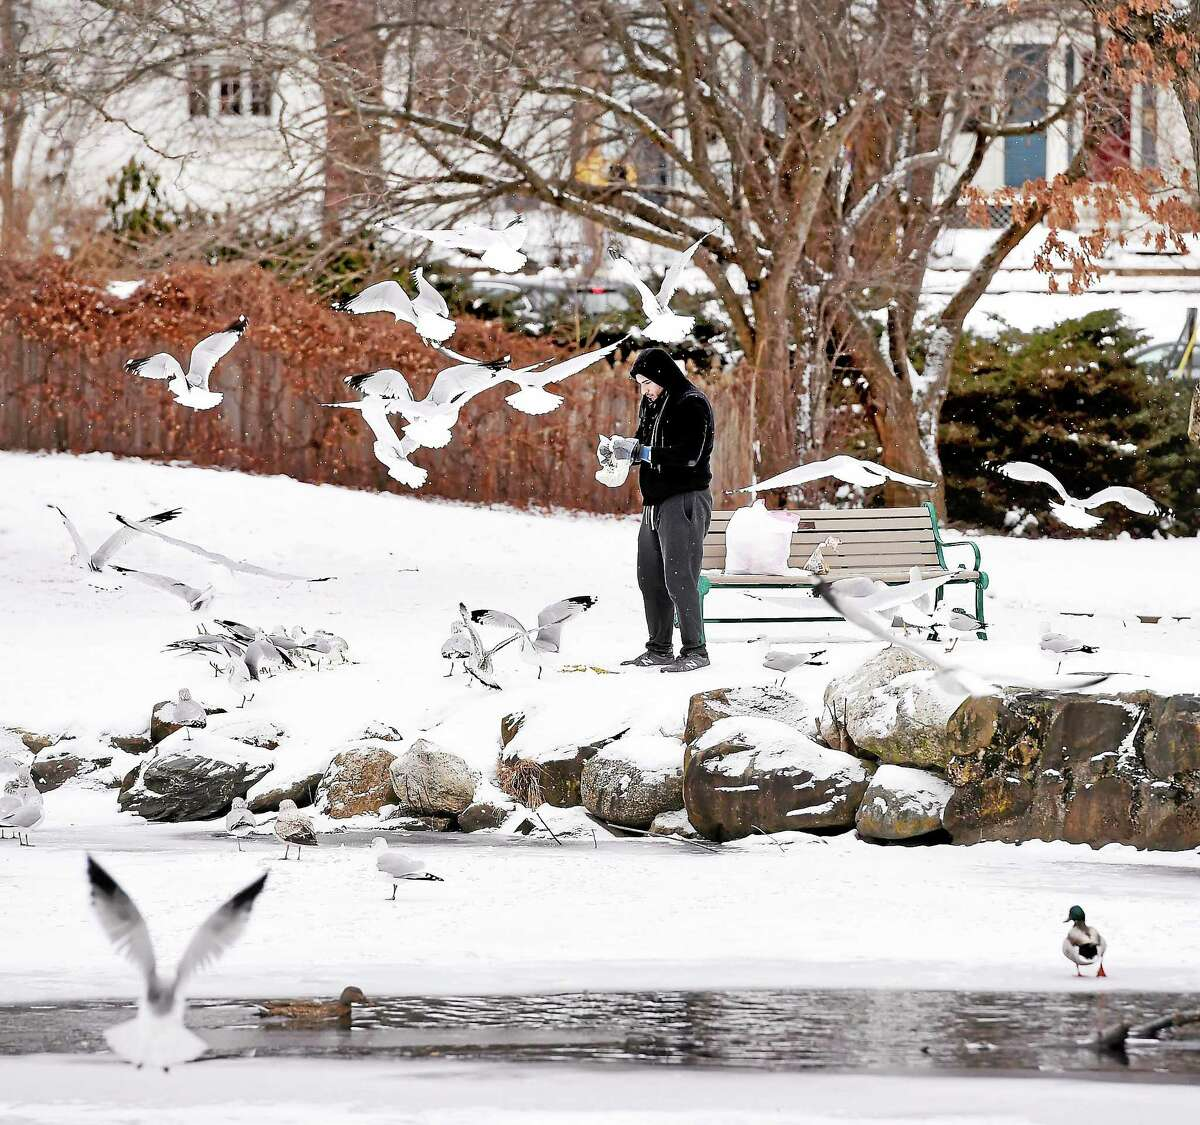 A man feeds gulls Monday at the Duck Pond behind City Hall in Milford.